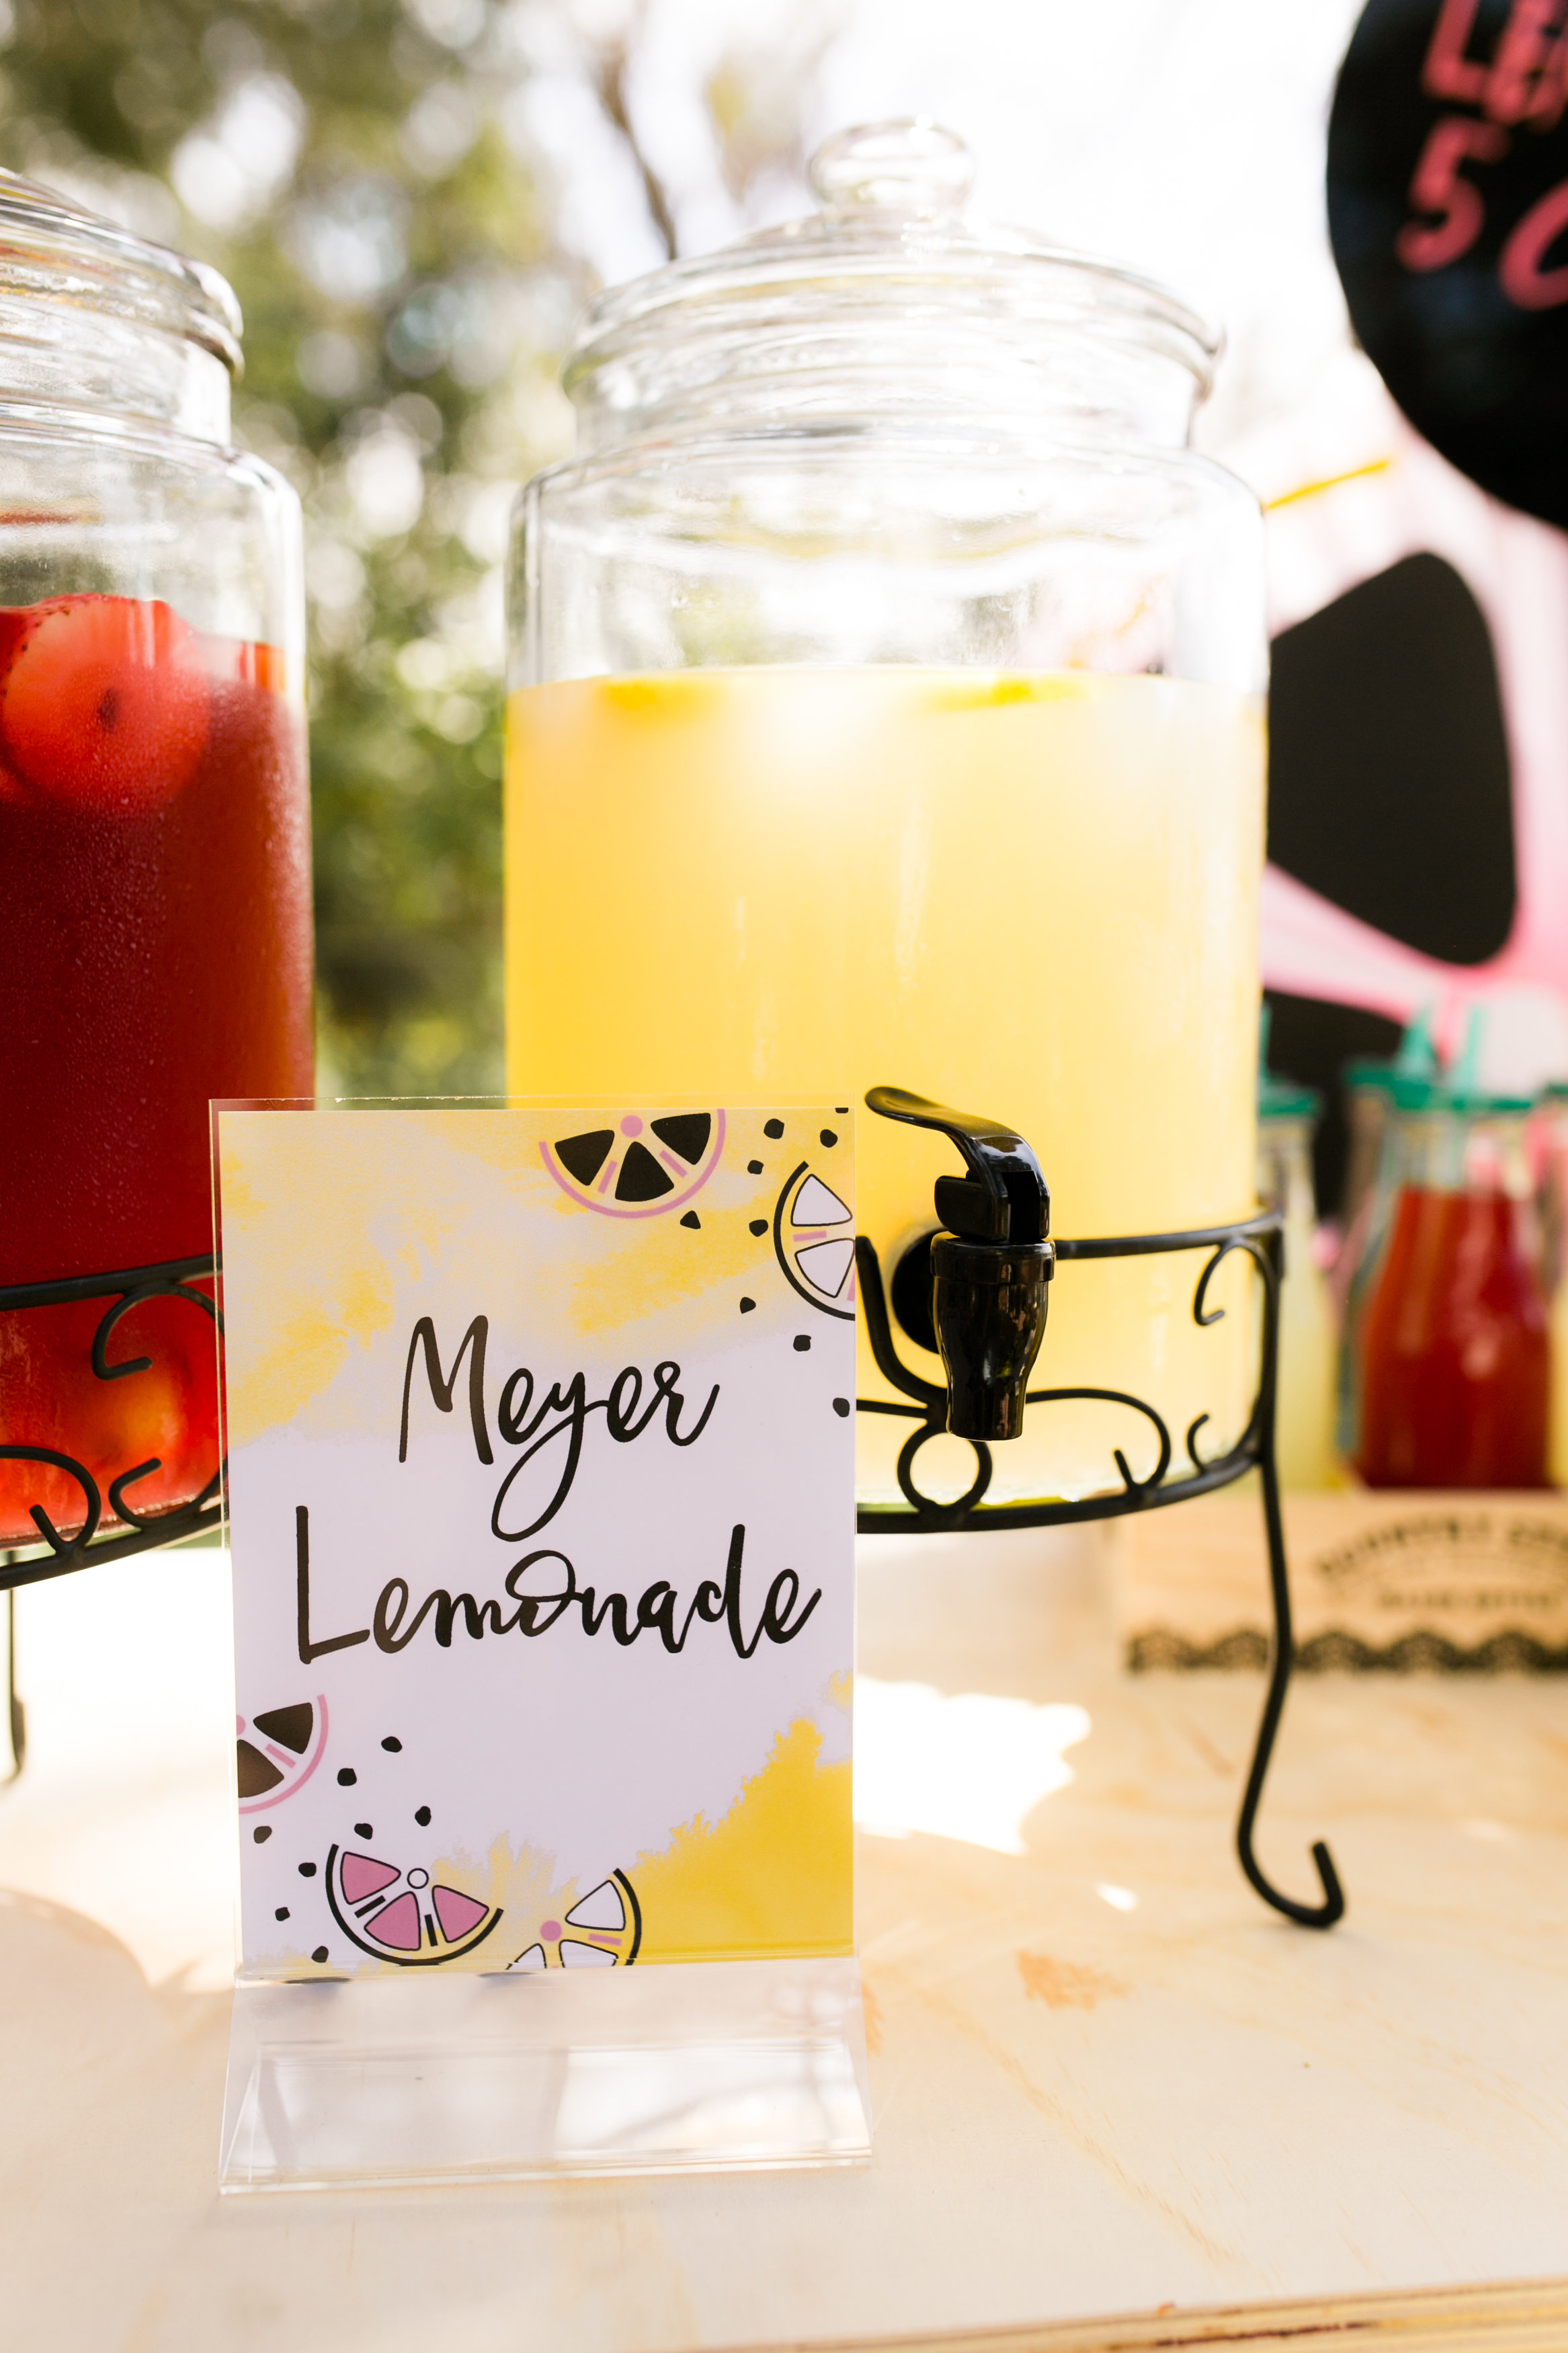 Lemonade Stand Birthday Party - Califia Farm Meyers Lemonade with Custom Signs by Midnight Confetti